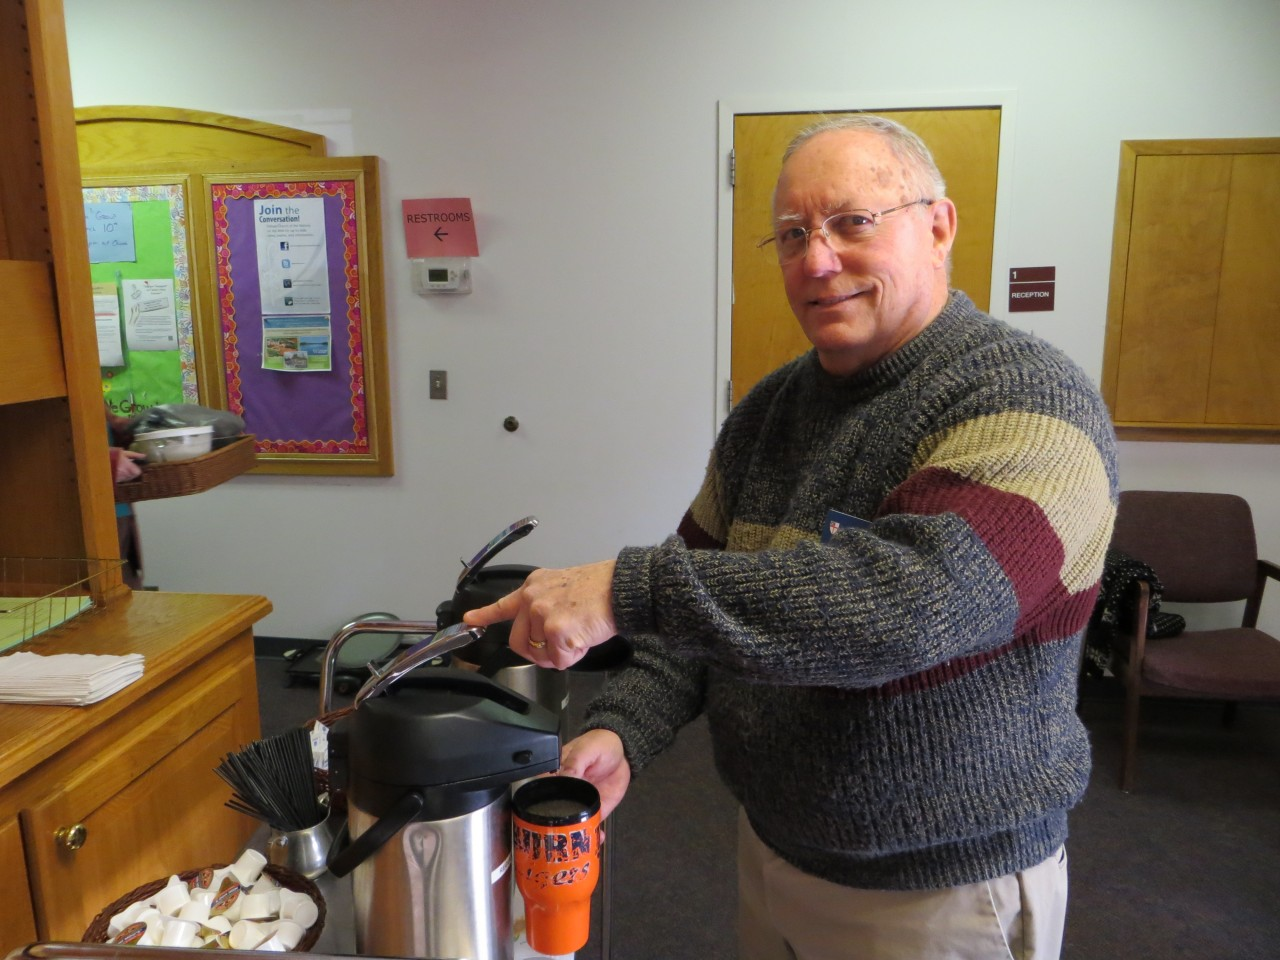 Chris starts the morning with coffee made fresh after each service.